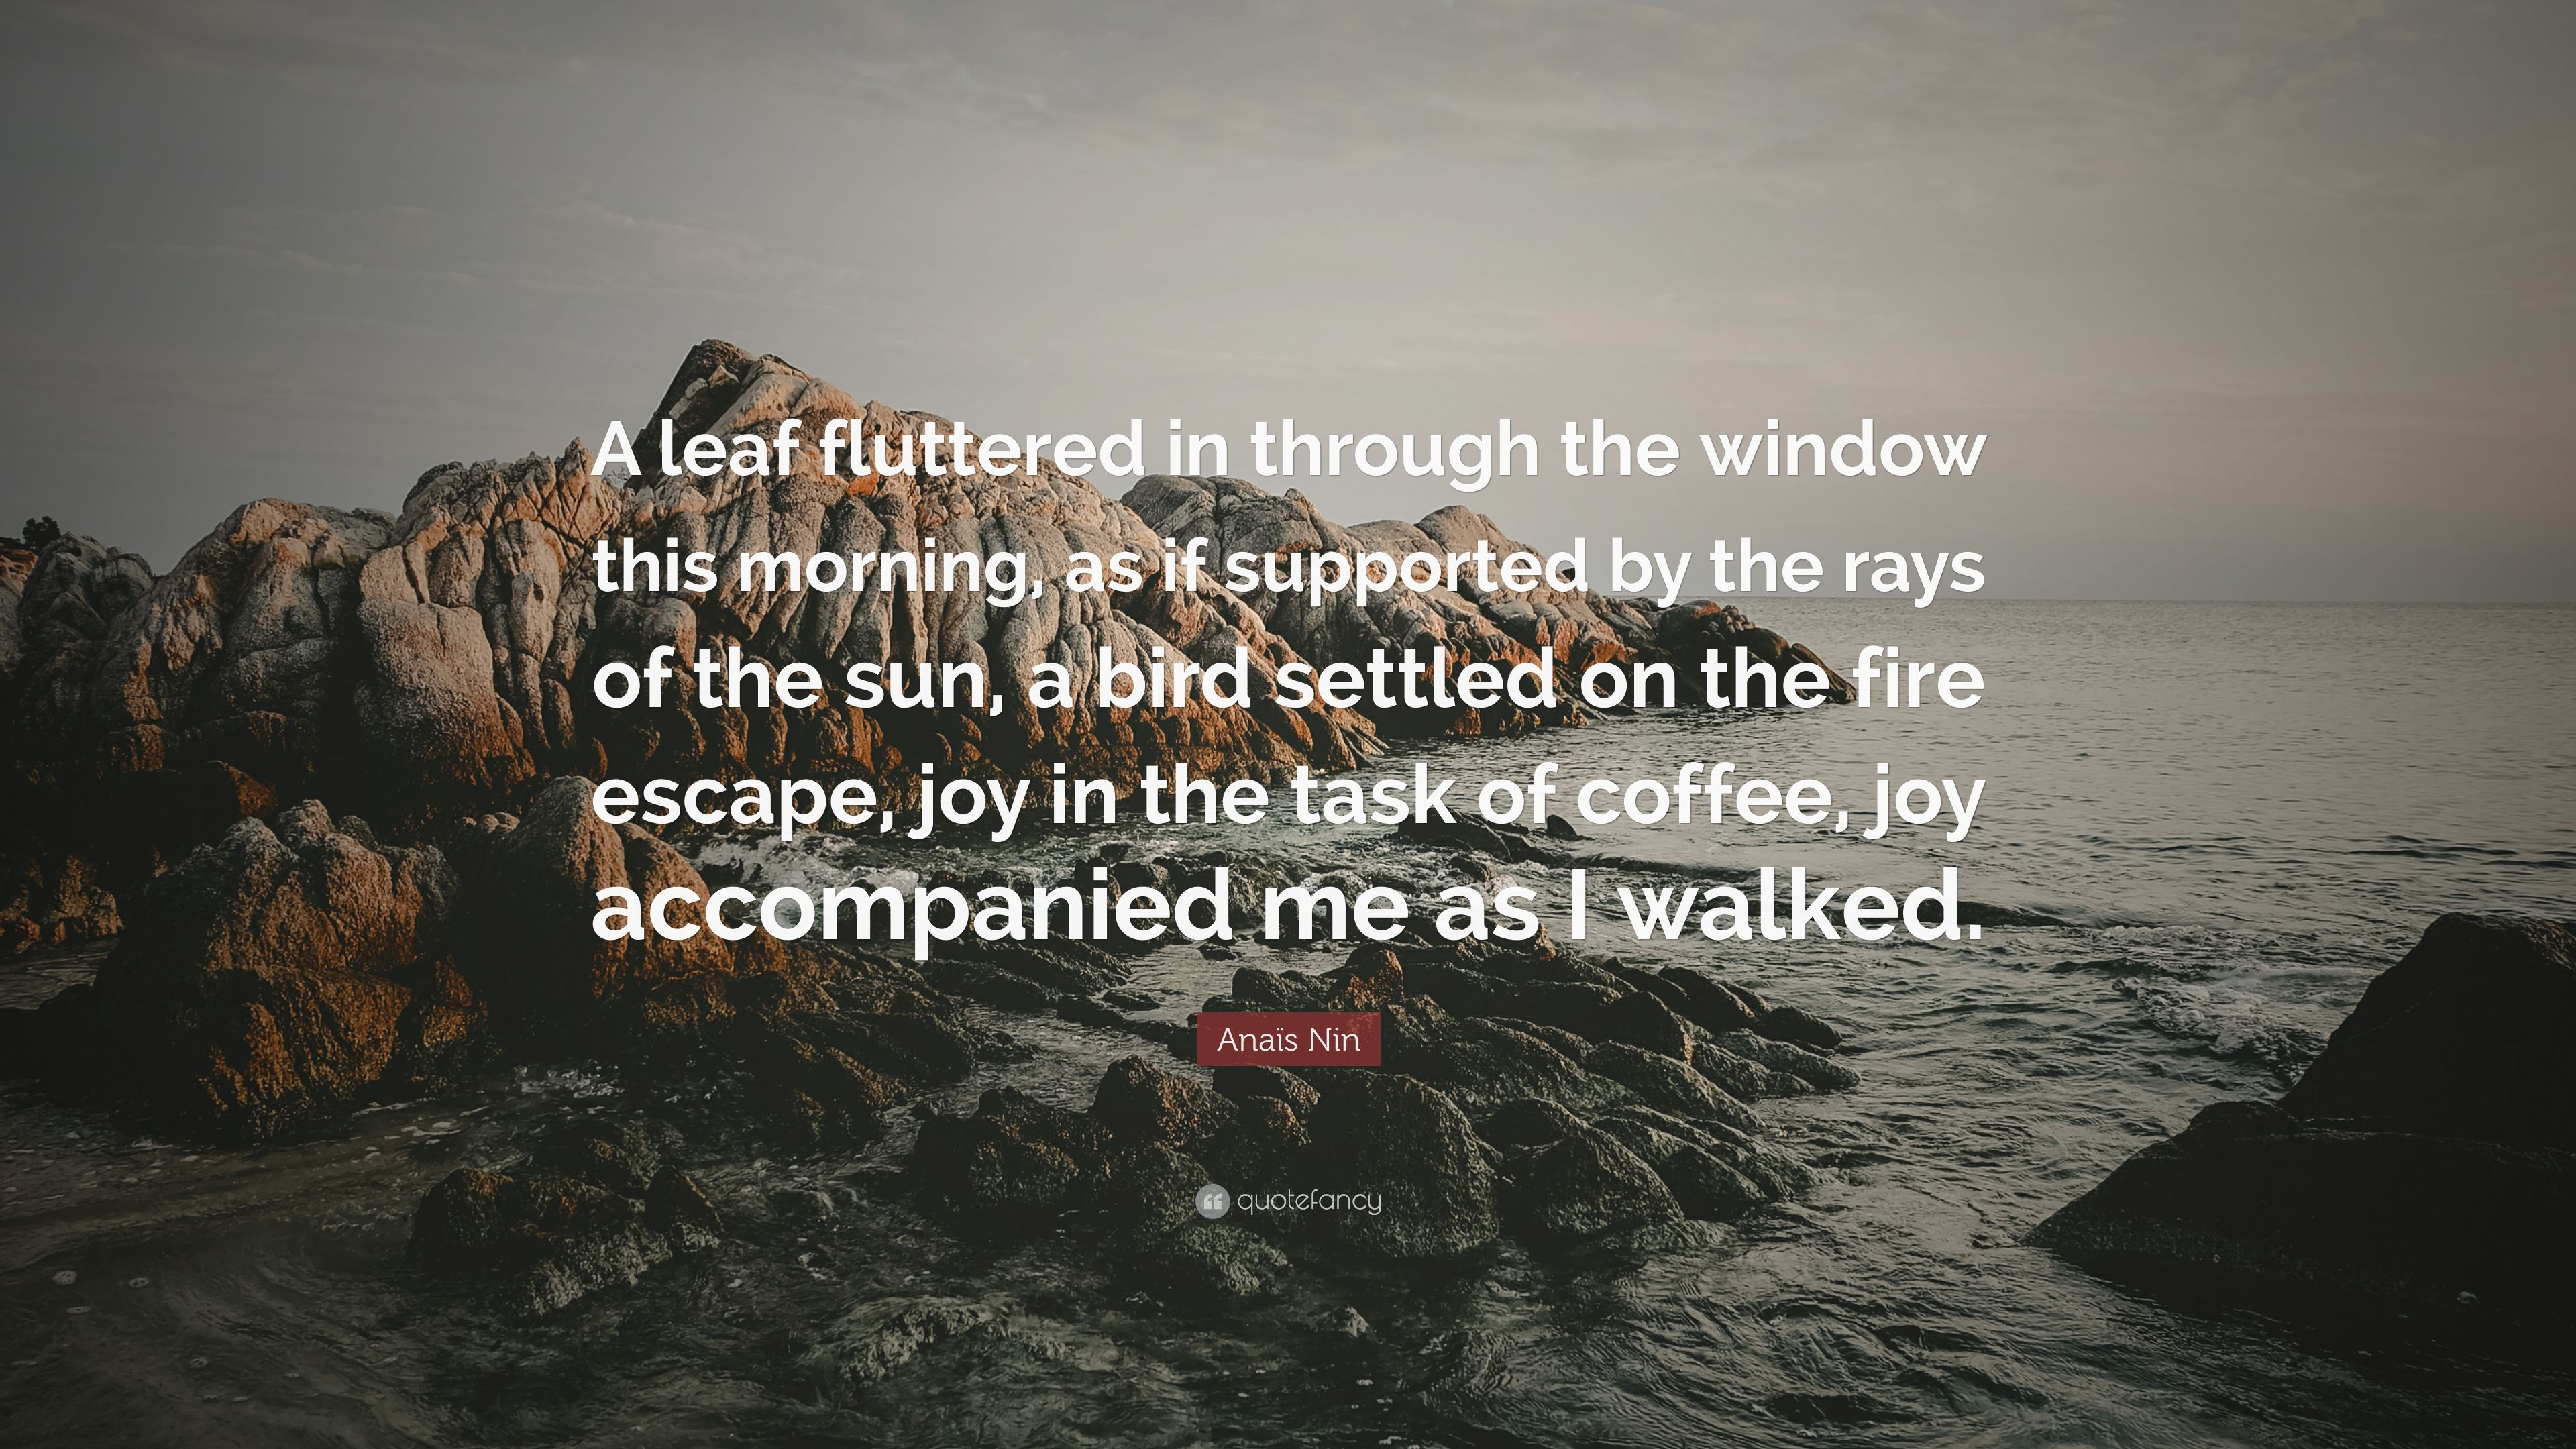 Nice Anaïs Nin Quote: U201cA Leaf Fluttered In Through The Window This Morning, As